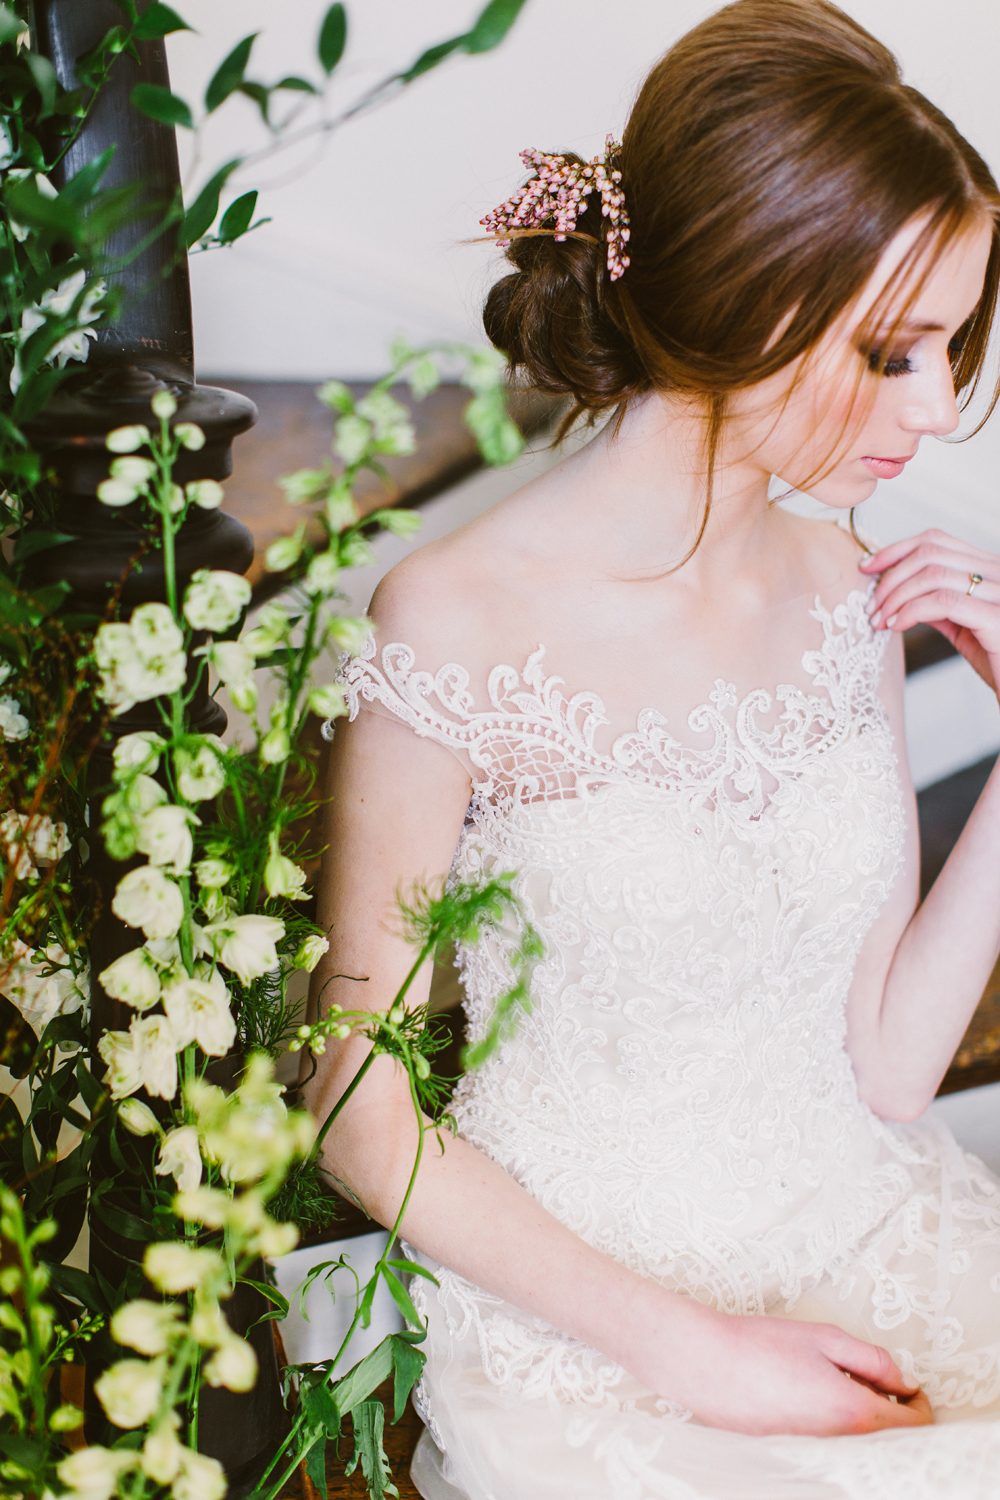 Drool worthy wedding gowns we cant stop looking at - http://ruffledblog.com/drool-worthy-wedding-gowns-we-cant-stop-looking-at photo Redfield Photography